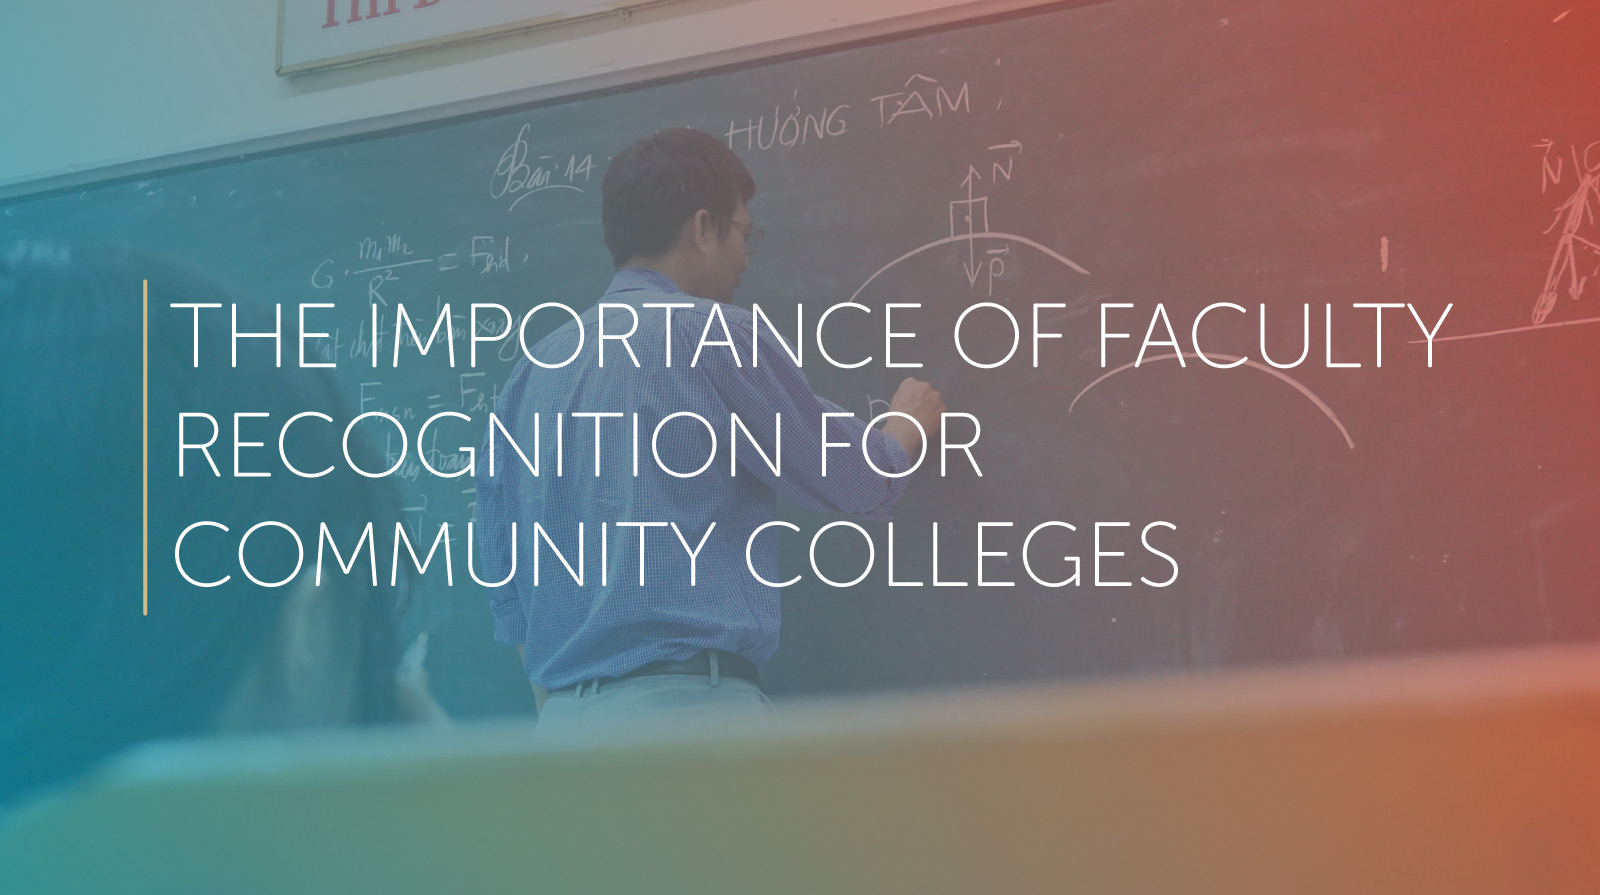 the importance of Faculty recognition for community colleges